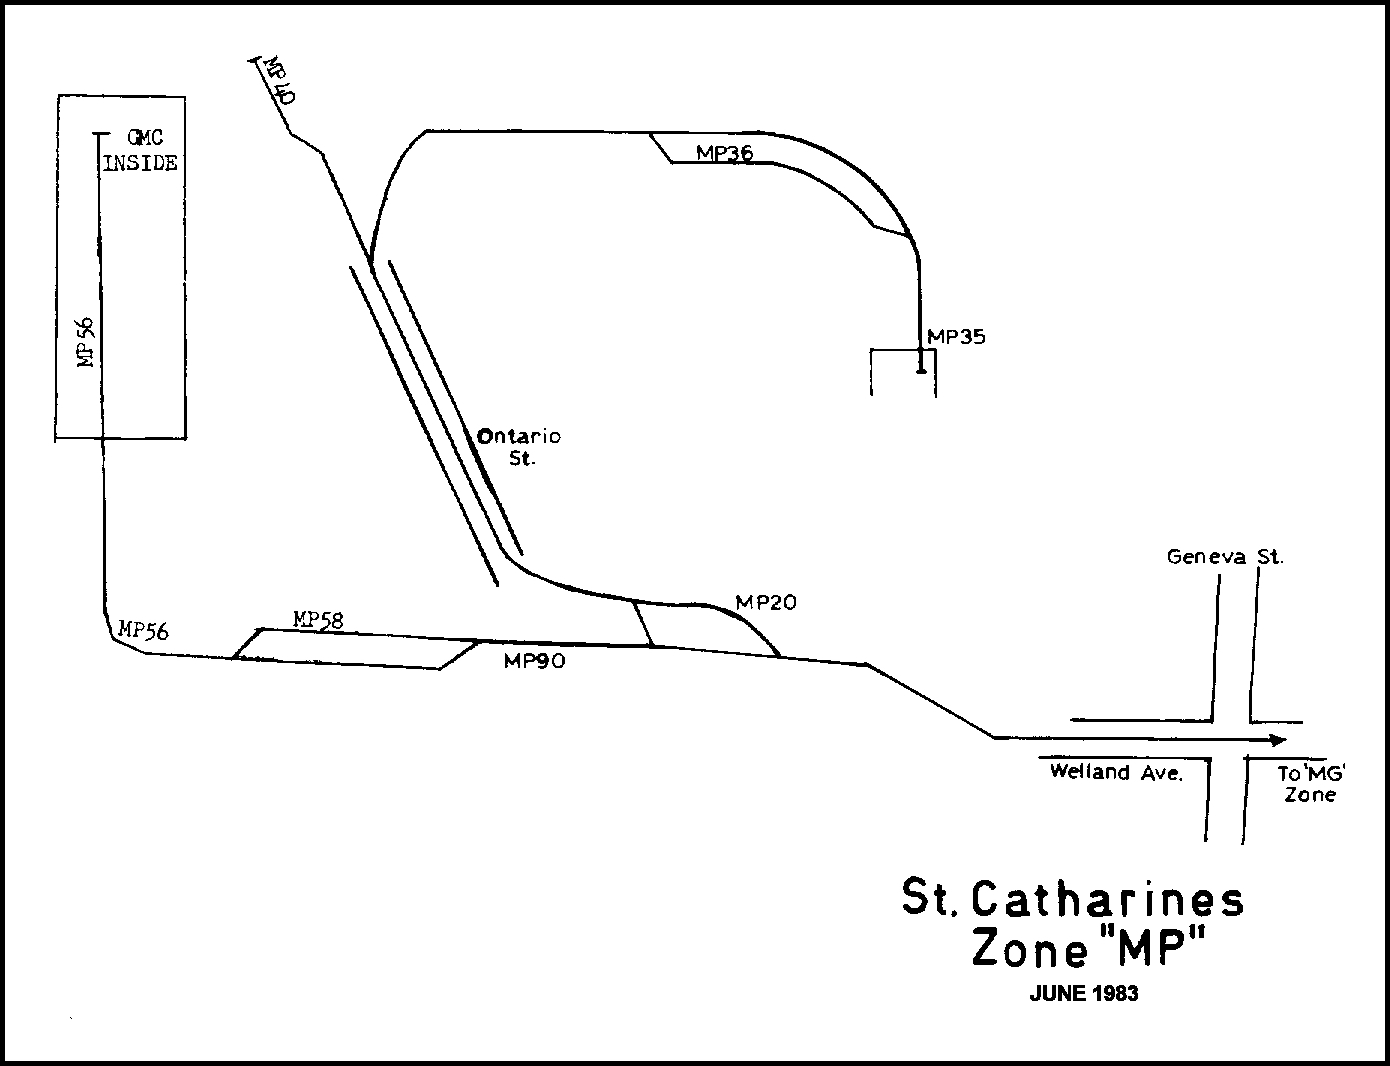 Zone MP - Map